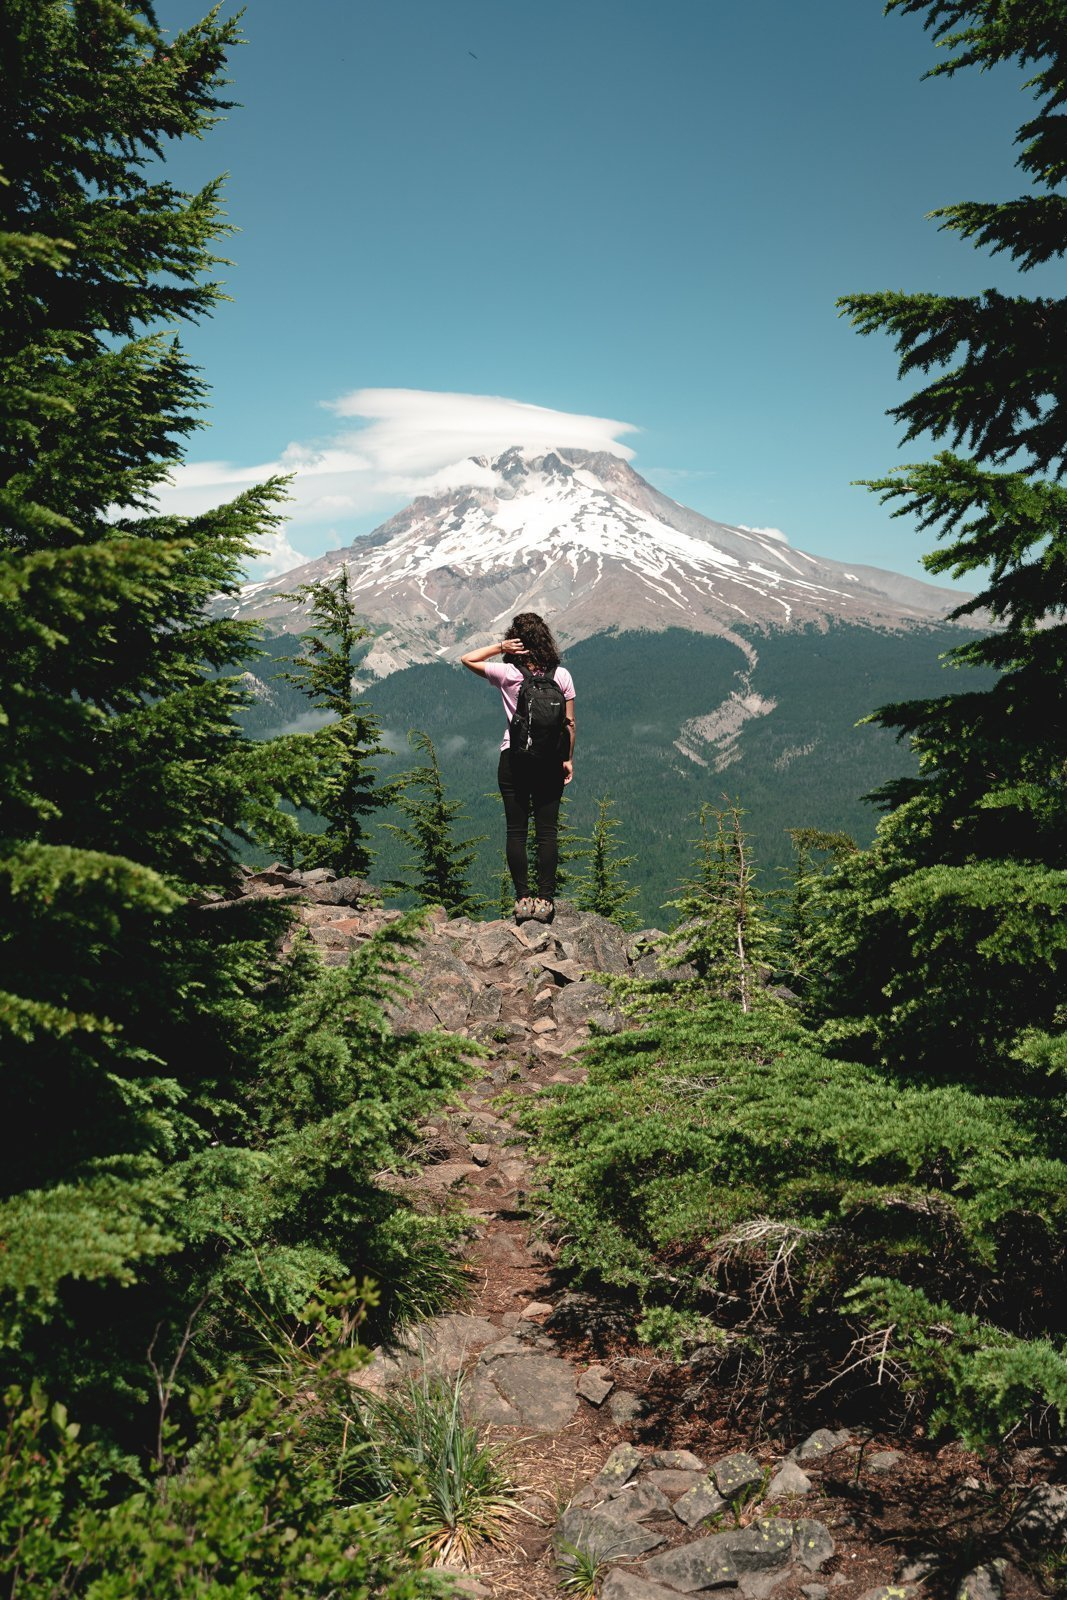 Tom Dick and Harry mountain has one of the best hikes during your Portland adventures.